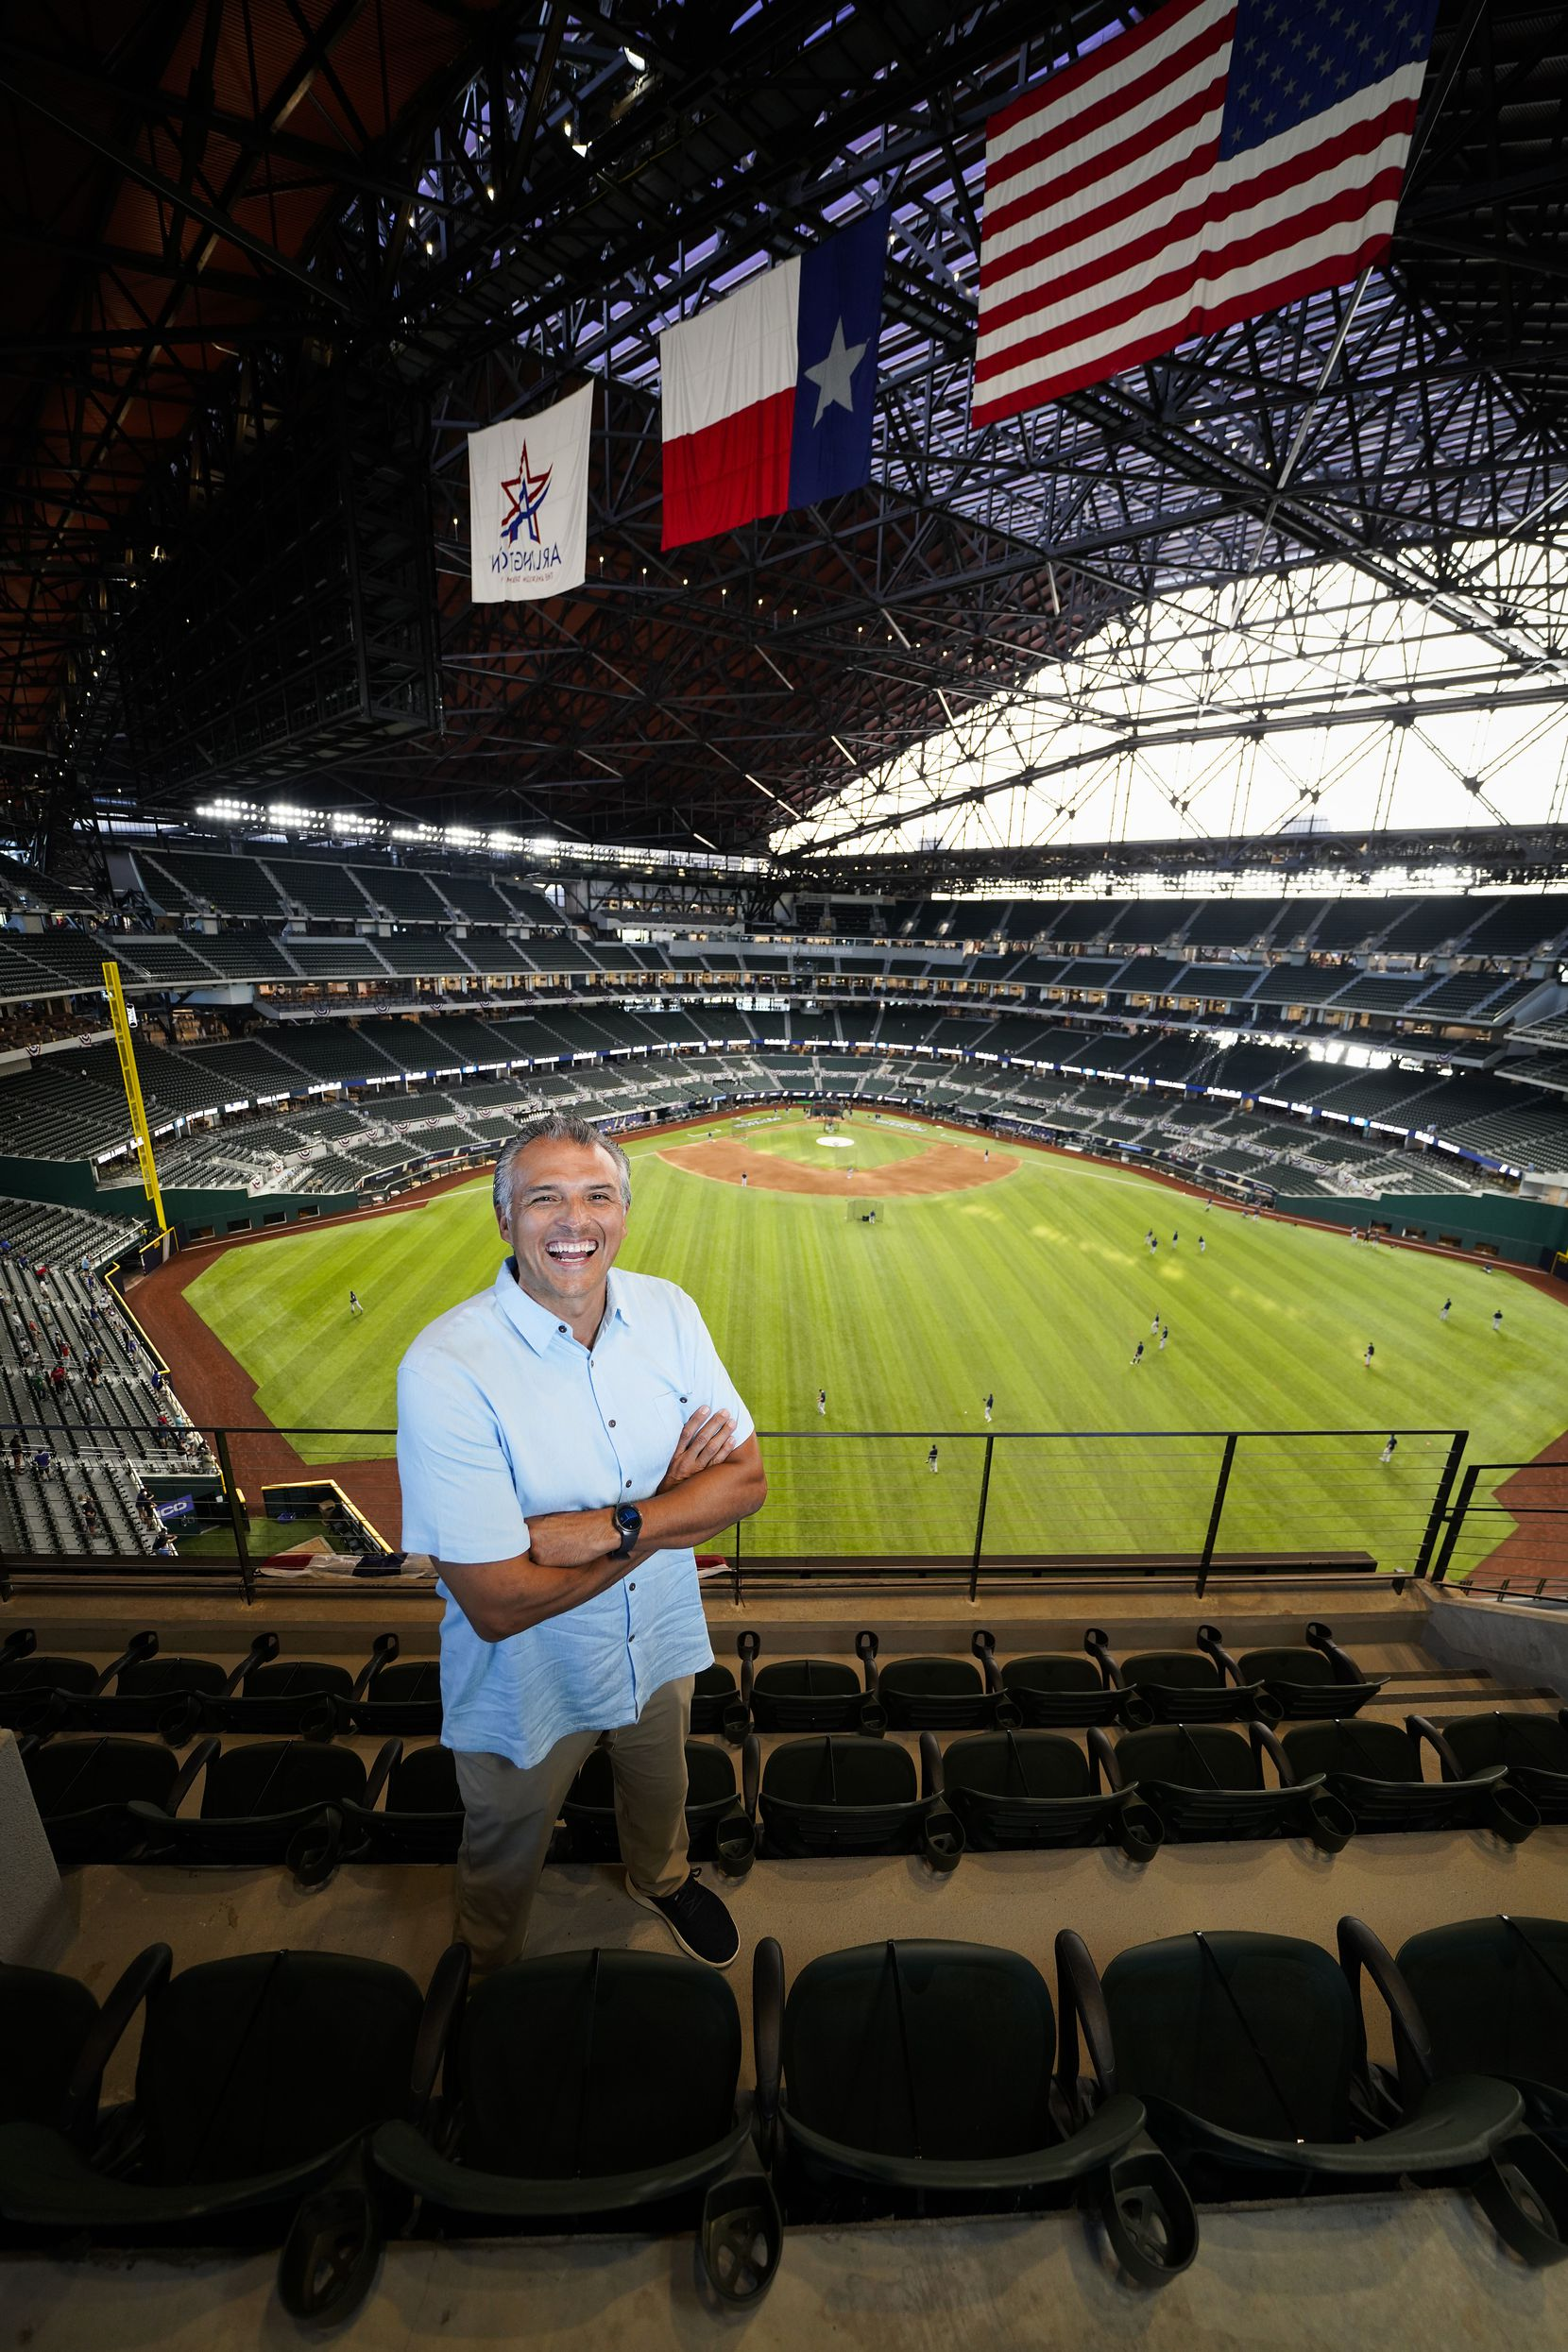 It was the thrill of a lifetime for Fred Ortiz, HKS lead designer of Globe Life Field, before watching Game 1 of a National League Championship Series in October.